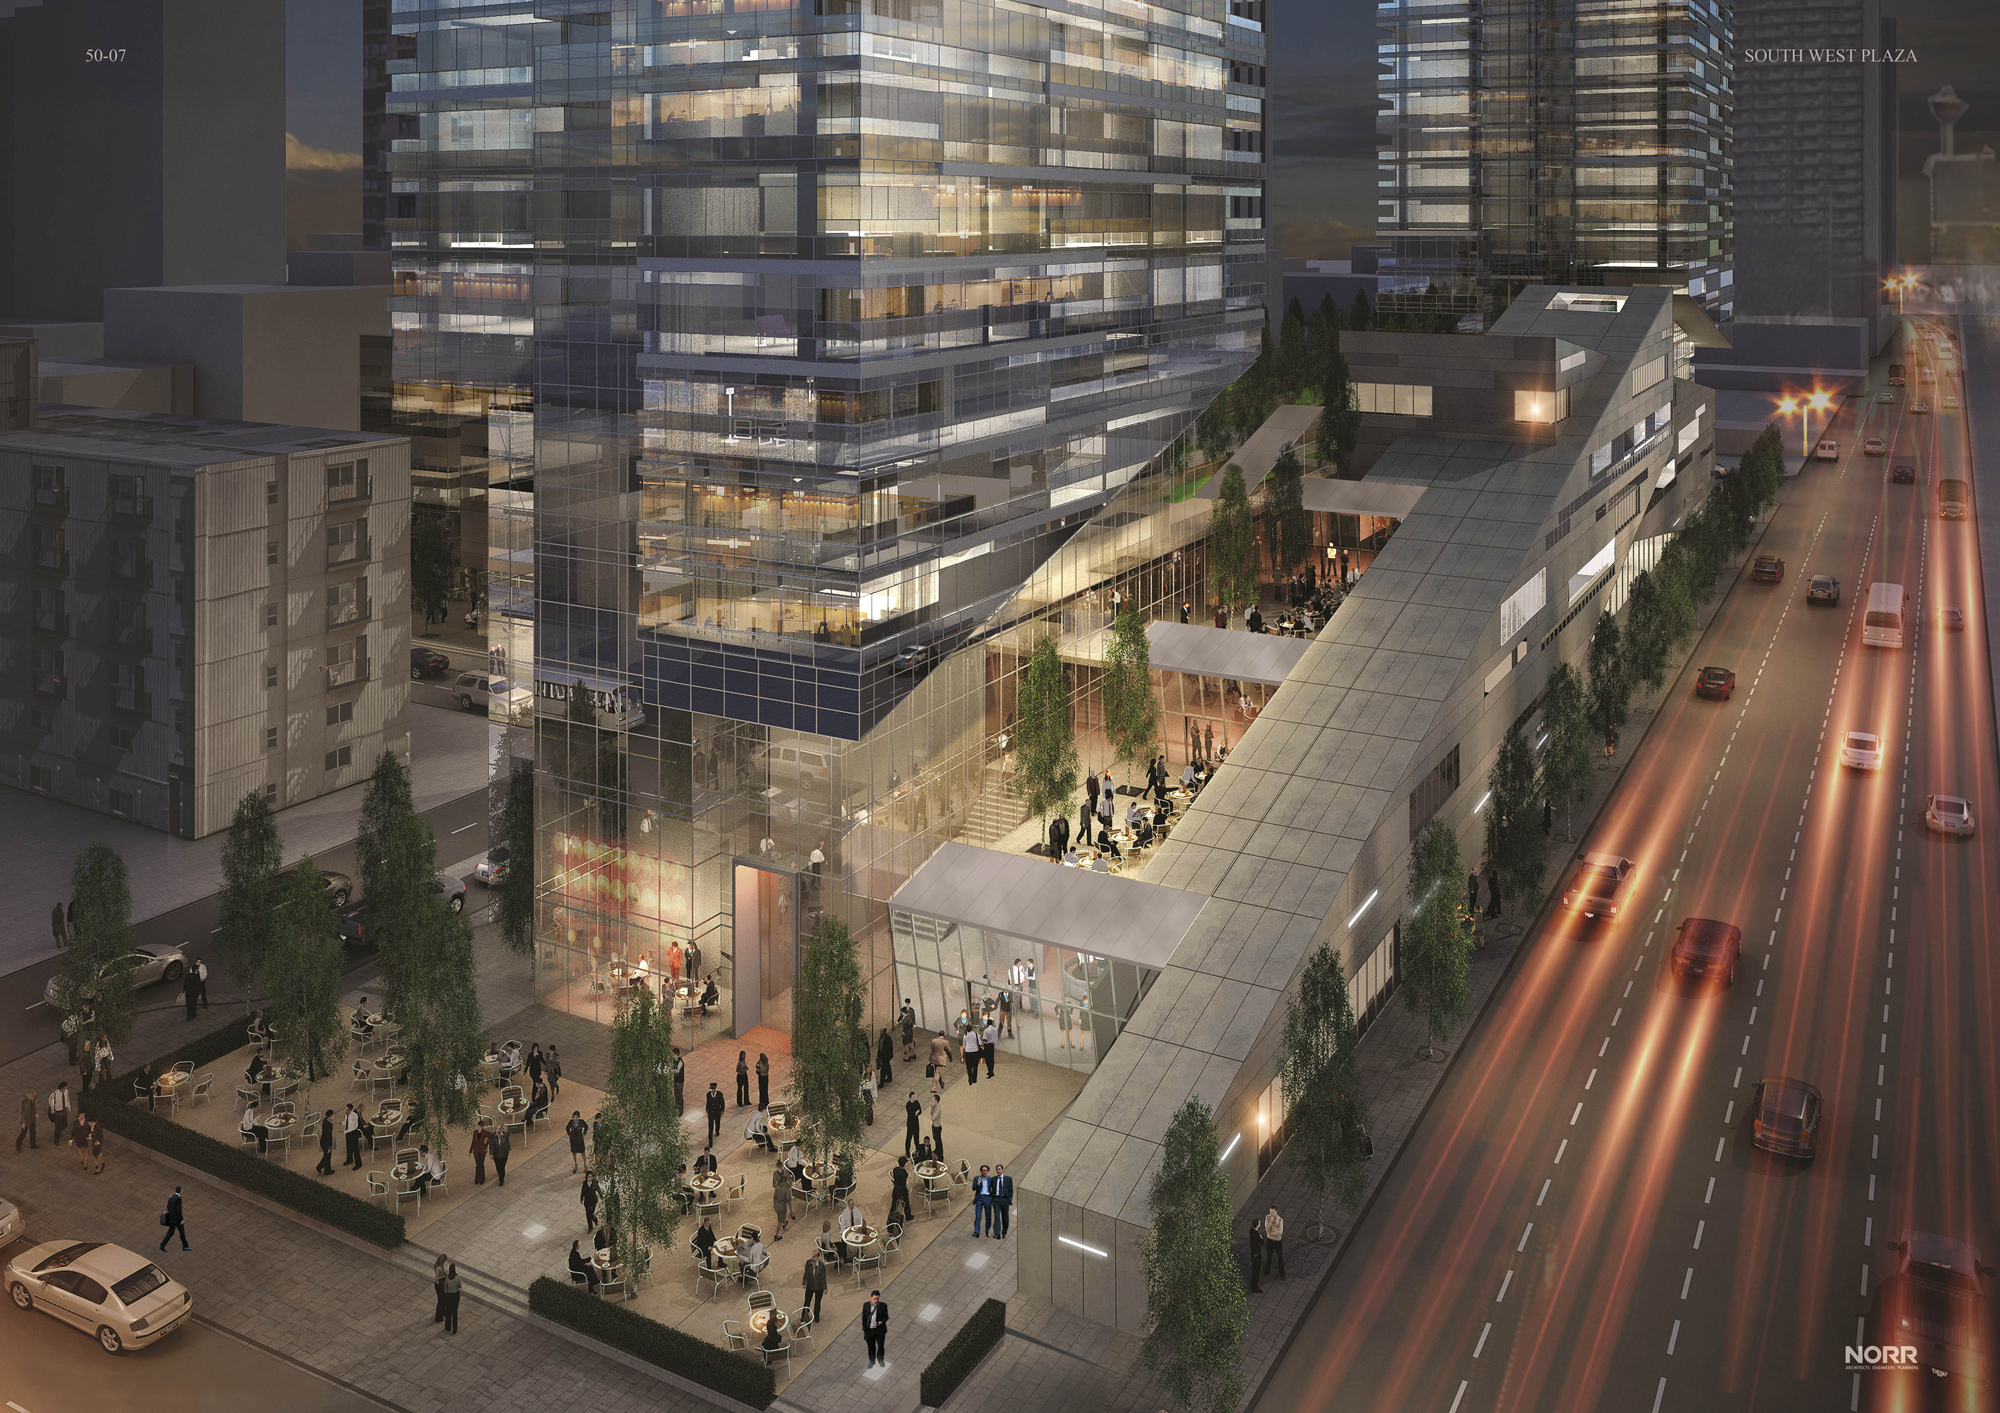 West Village Towers is a partnership between Wexford Developments and Cidex Group of Companies who retained NORR architects Calgary and Dubai offices, including world-renowned architect, Yahya Jan, to design West Village Towers, which will include 575 units and 90,000 sf of retail including a possible grocery store.